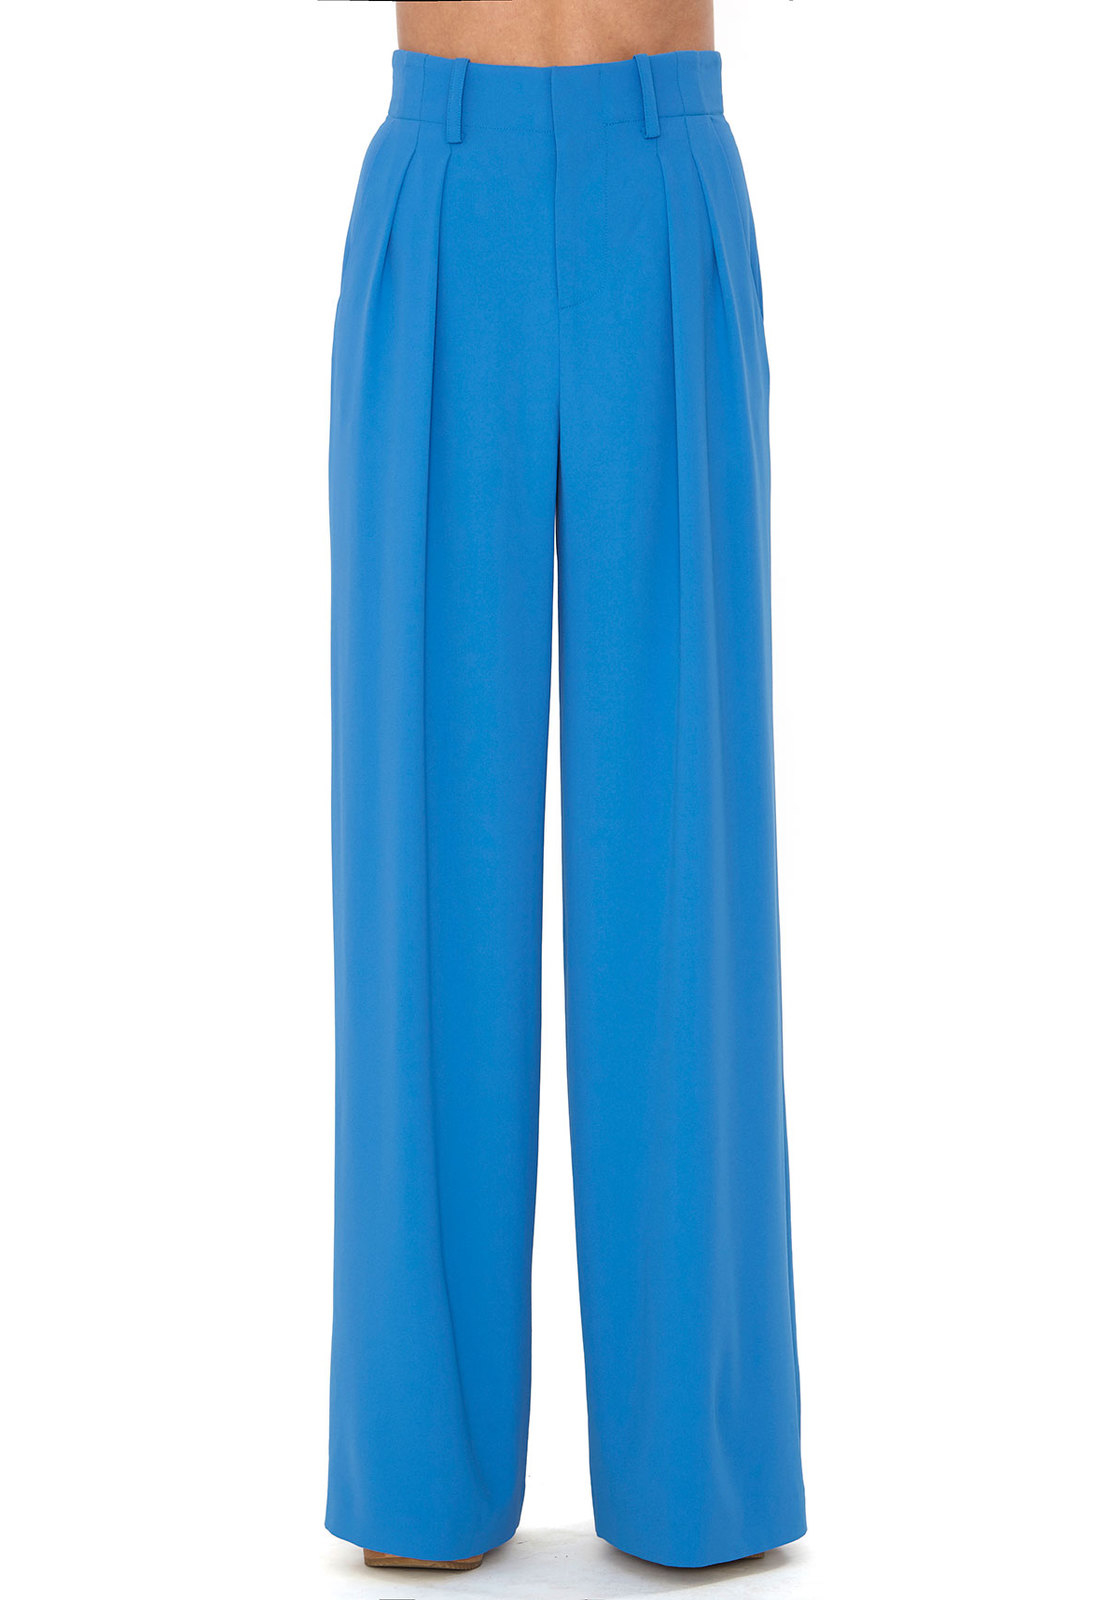 Alice   olivia Royal Blue Eloise Trouser in Blue | Lyst